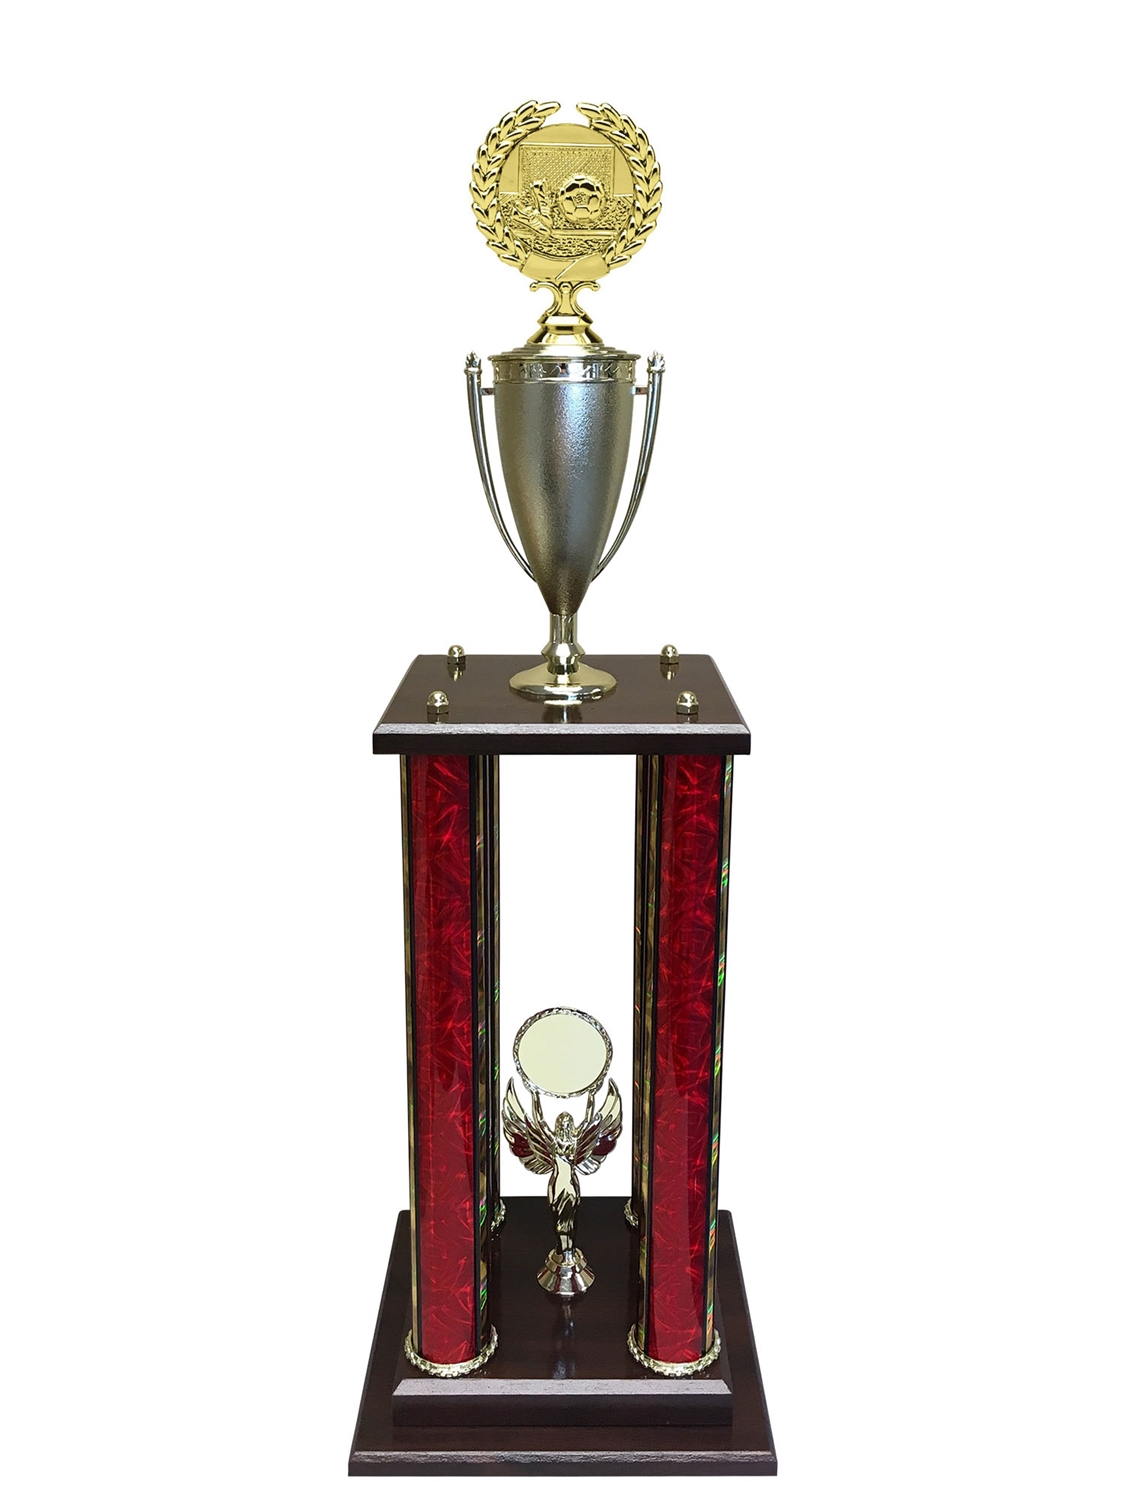 4 Post Soccer Trophy in 11 colors & 3 sizes